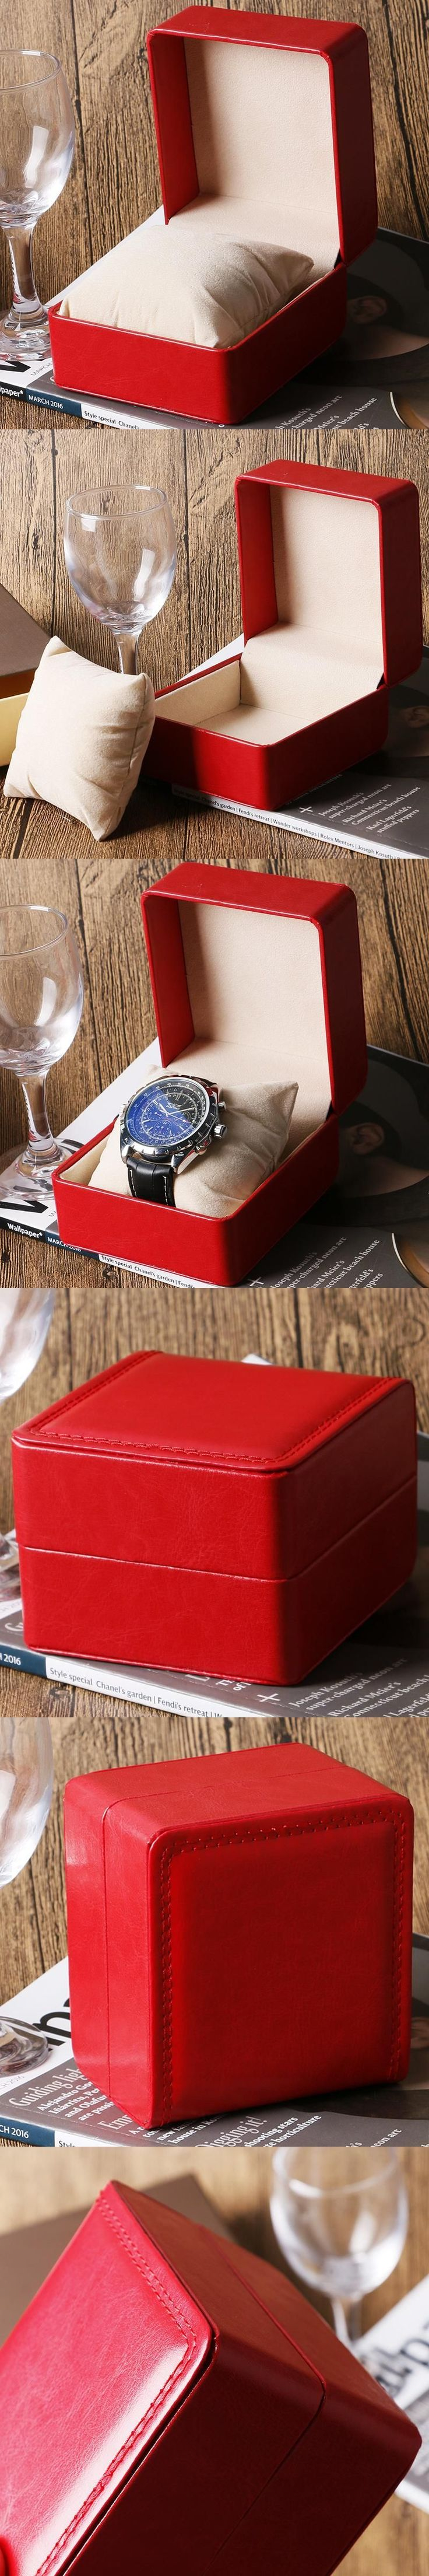 Organizer Luxury Fashion Foam Pad For Bracelet Bangle Watch Leather Watch Box Red Pillow Package Case  For Watch Jewelry #luxuryjewelrypackaging